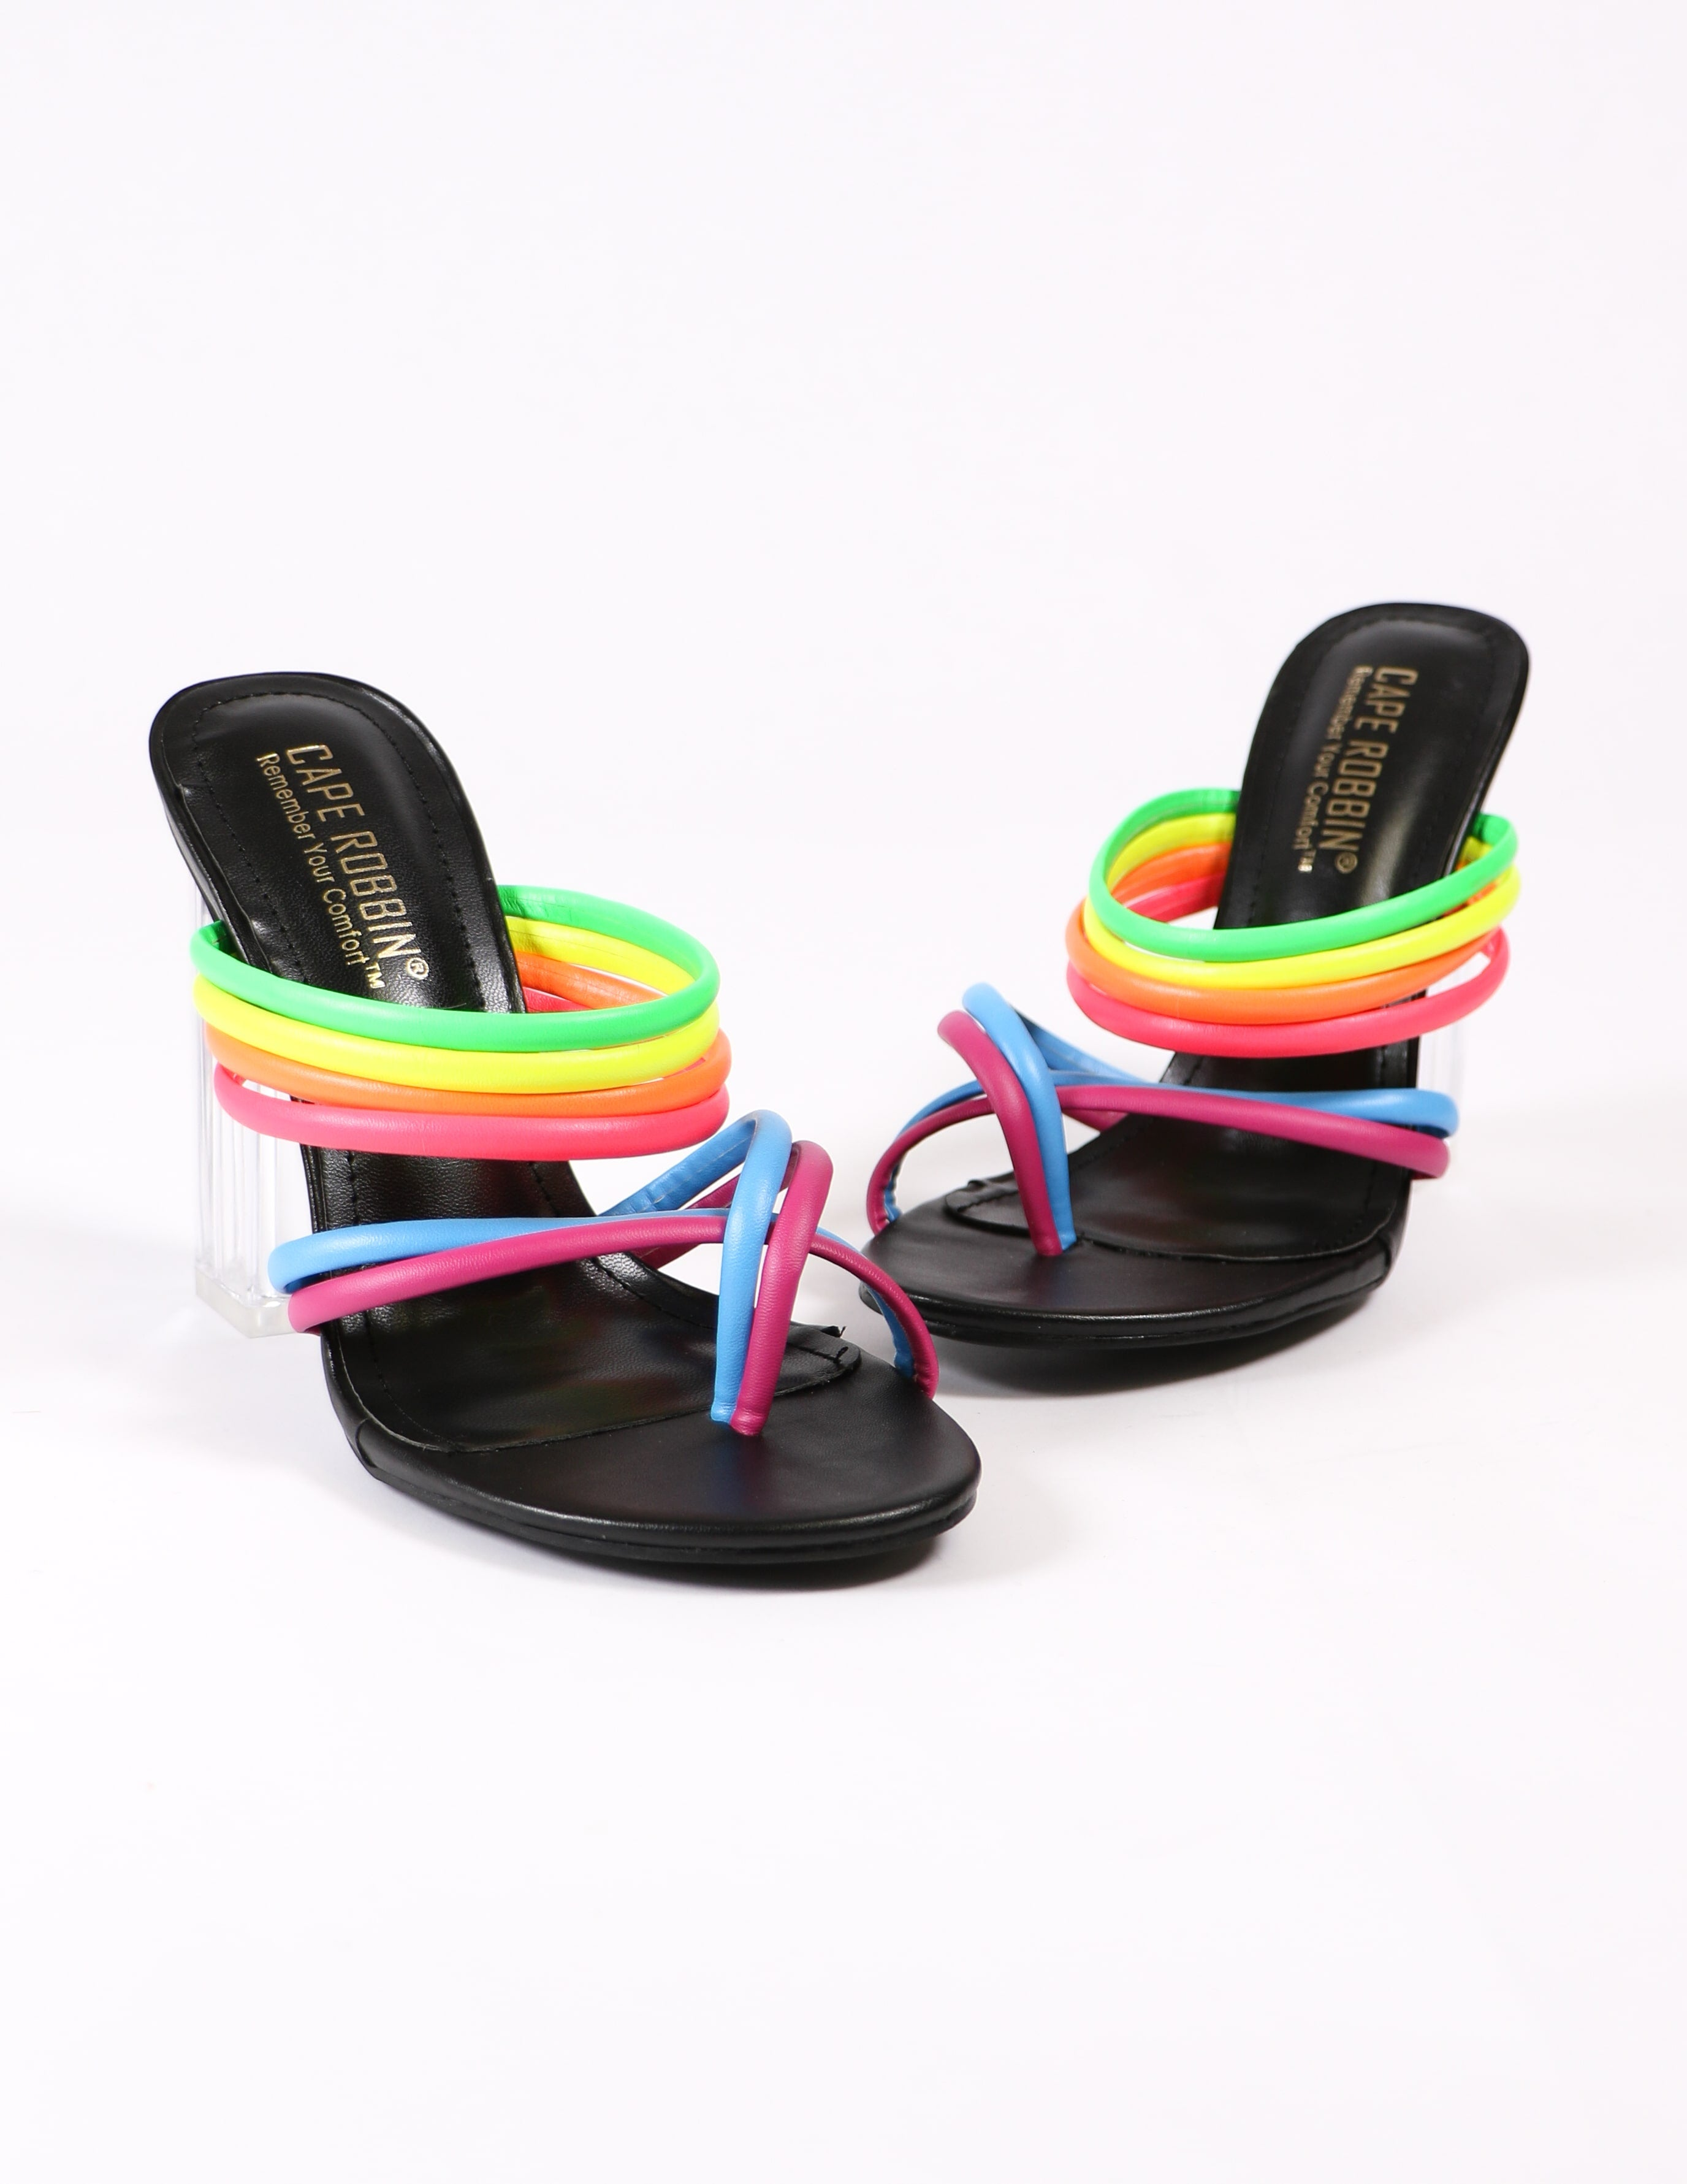 leading rainbow heels on white background - elle bleu shoes